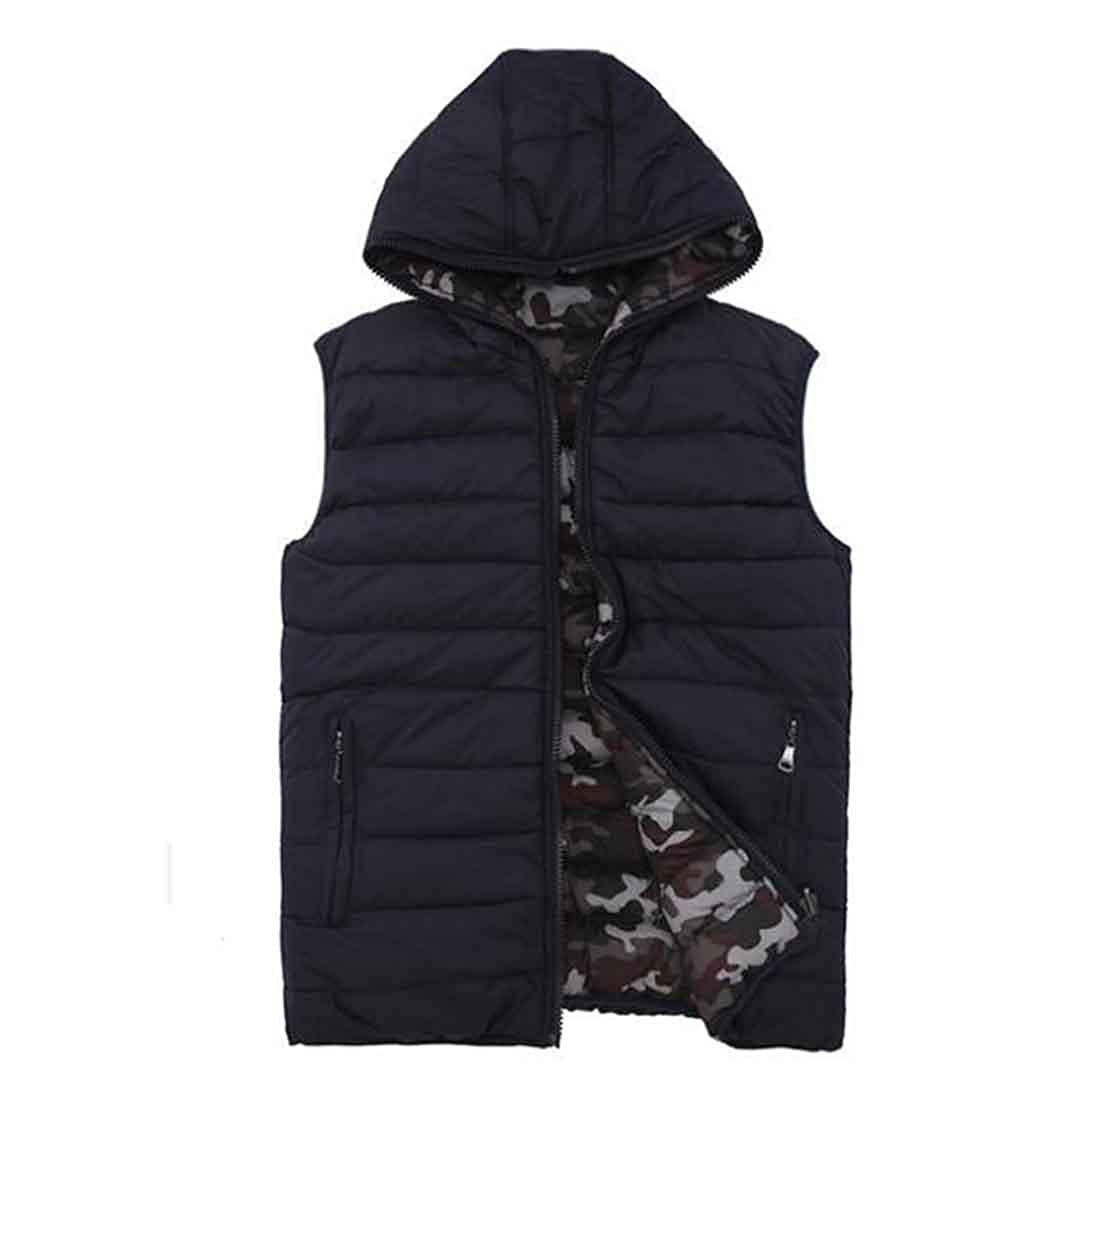 932c7d23db5add Men s Gilet Bodywarmer Down Cotton Vest Winter Camouflage Waterproof Warm Sleeveless  Jackets Hooded Reversible Stylish Down Coat Walking Hiking Microfleece